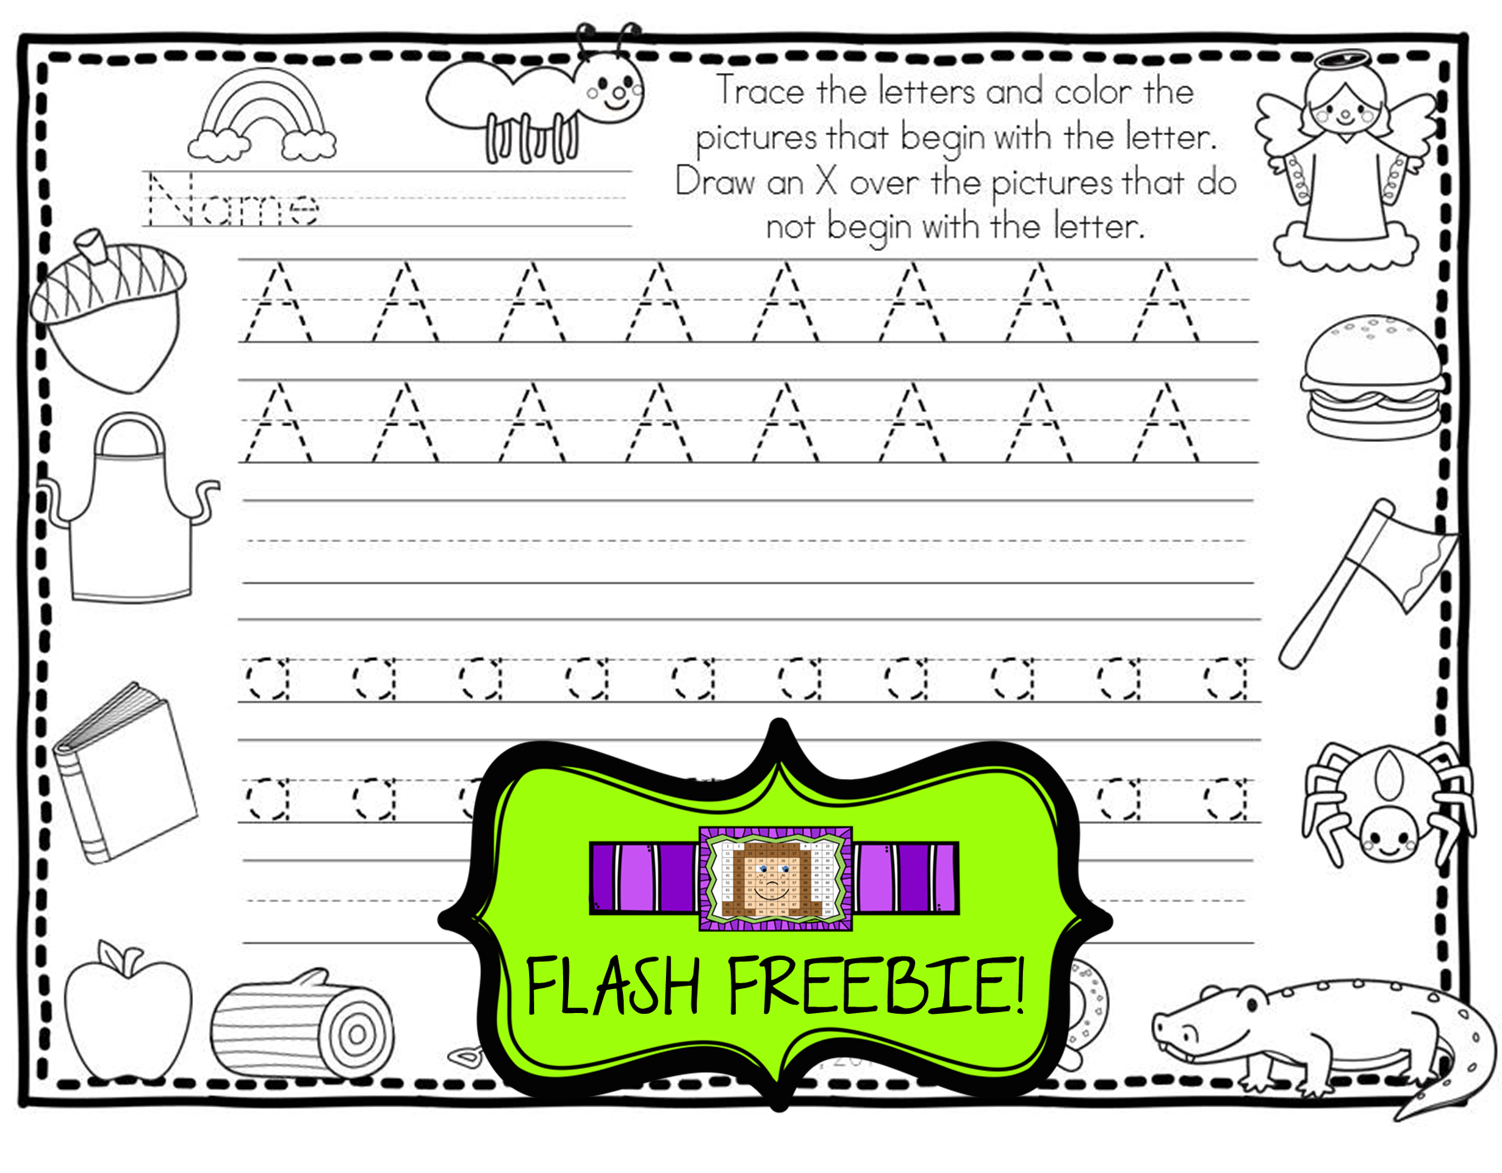 Flash Freebie Happy Handwriting Coloring And